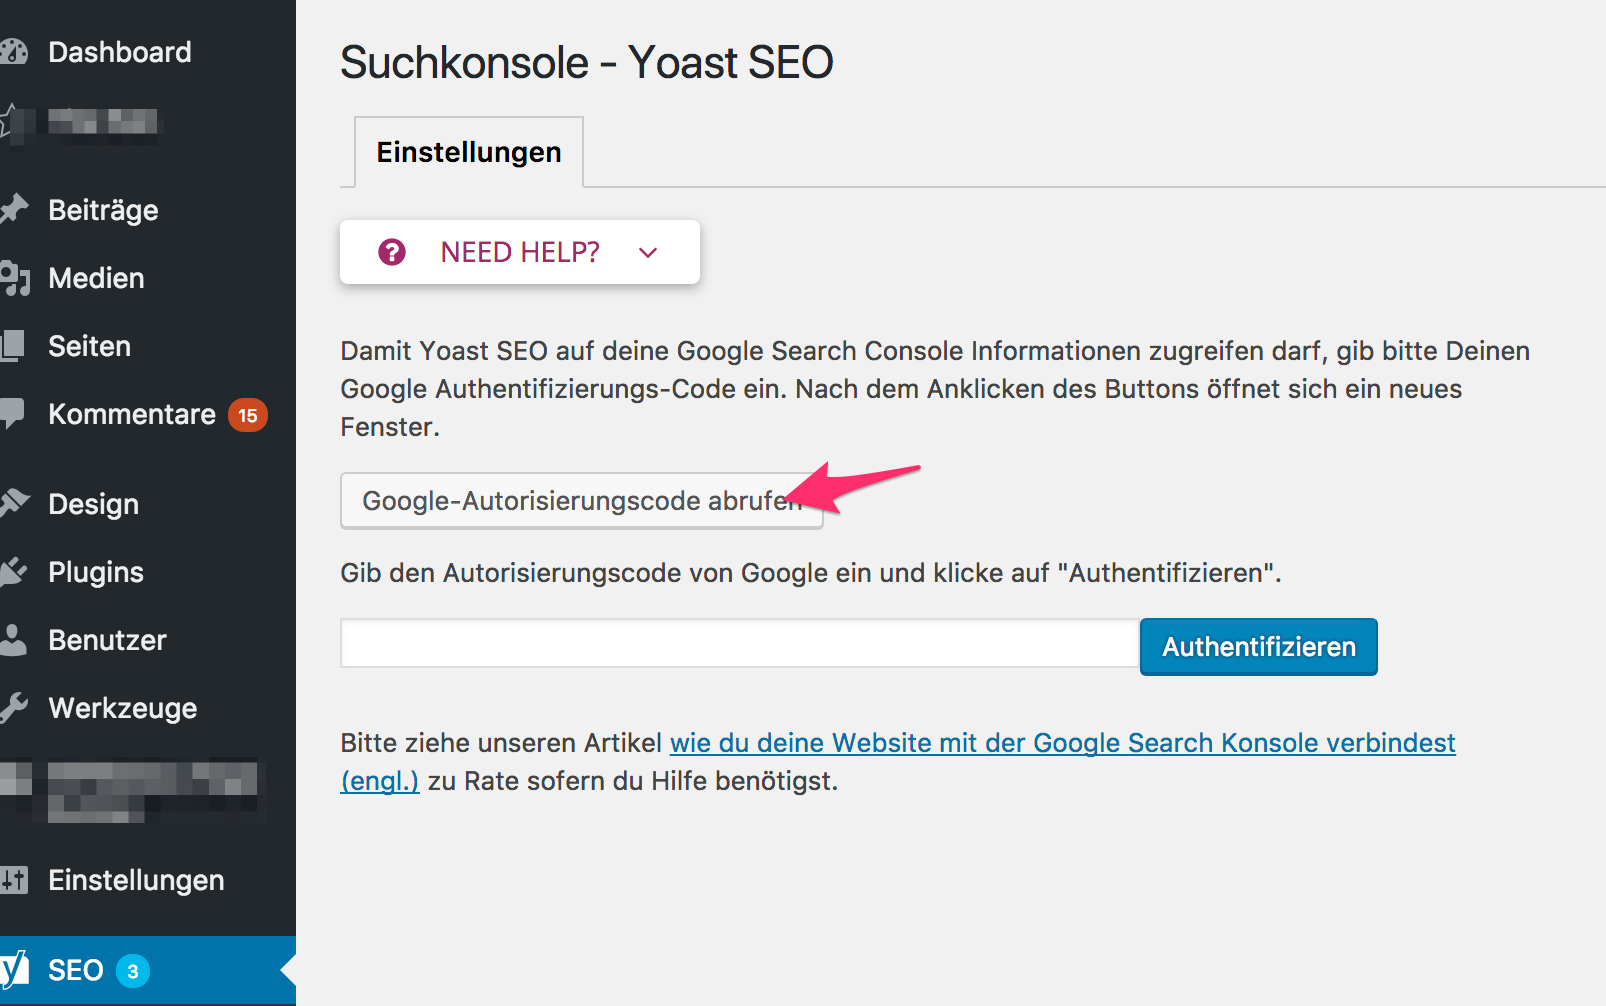 Yoast SEO Search Console Authentifizierung